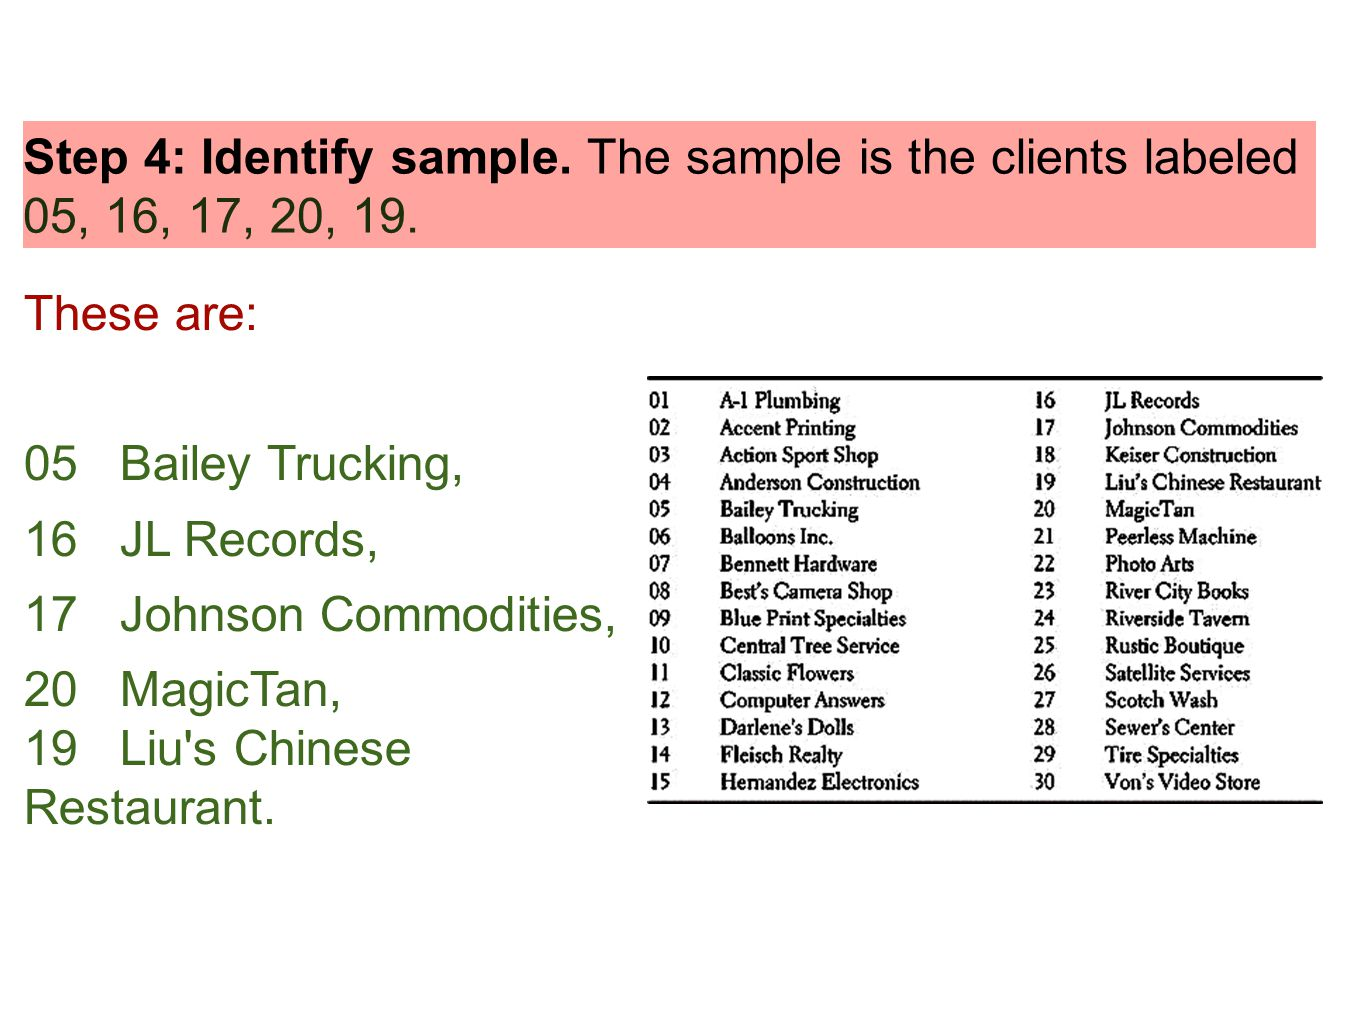 Step 4: Identify sample. The sample is the clients labeled 05, 16, 17, 20, 19.